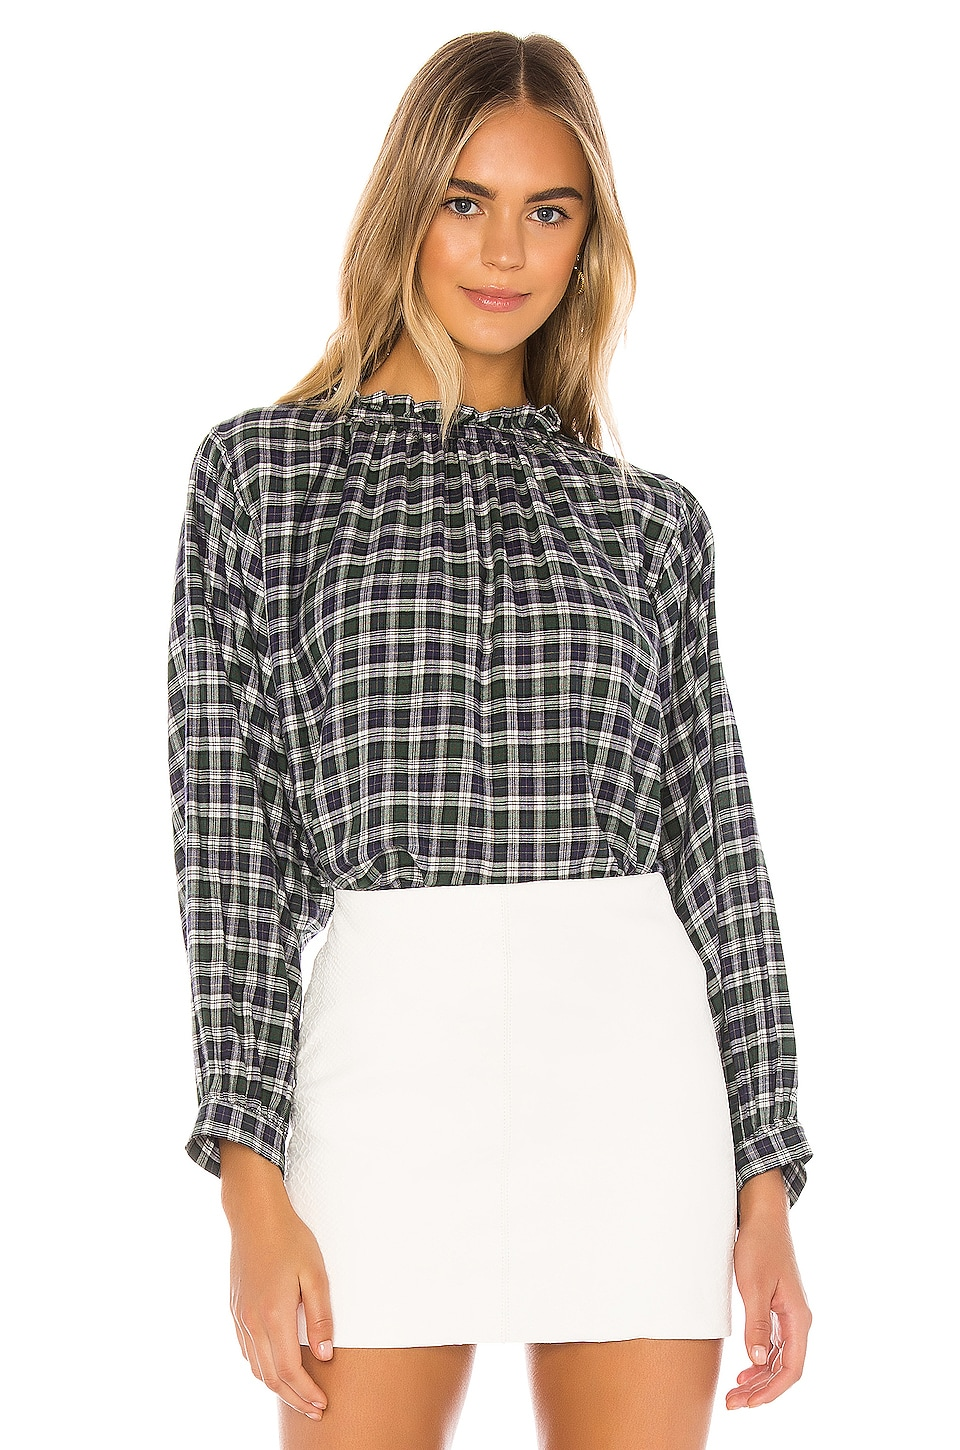 Birds of Paradis by Trovata Talia Blouse in Navy & Green Plaid